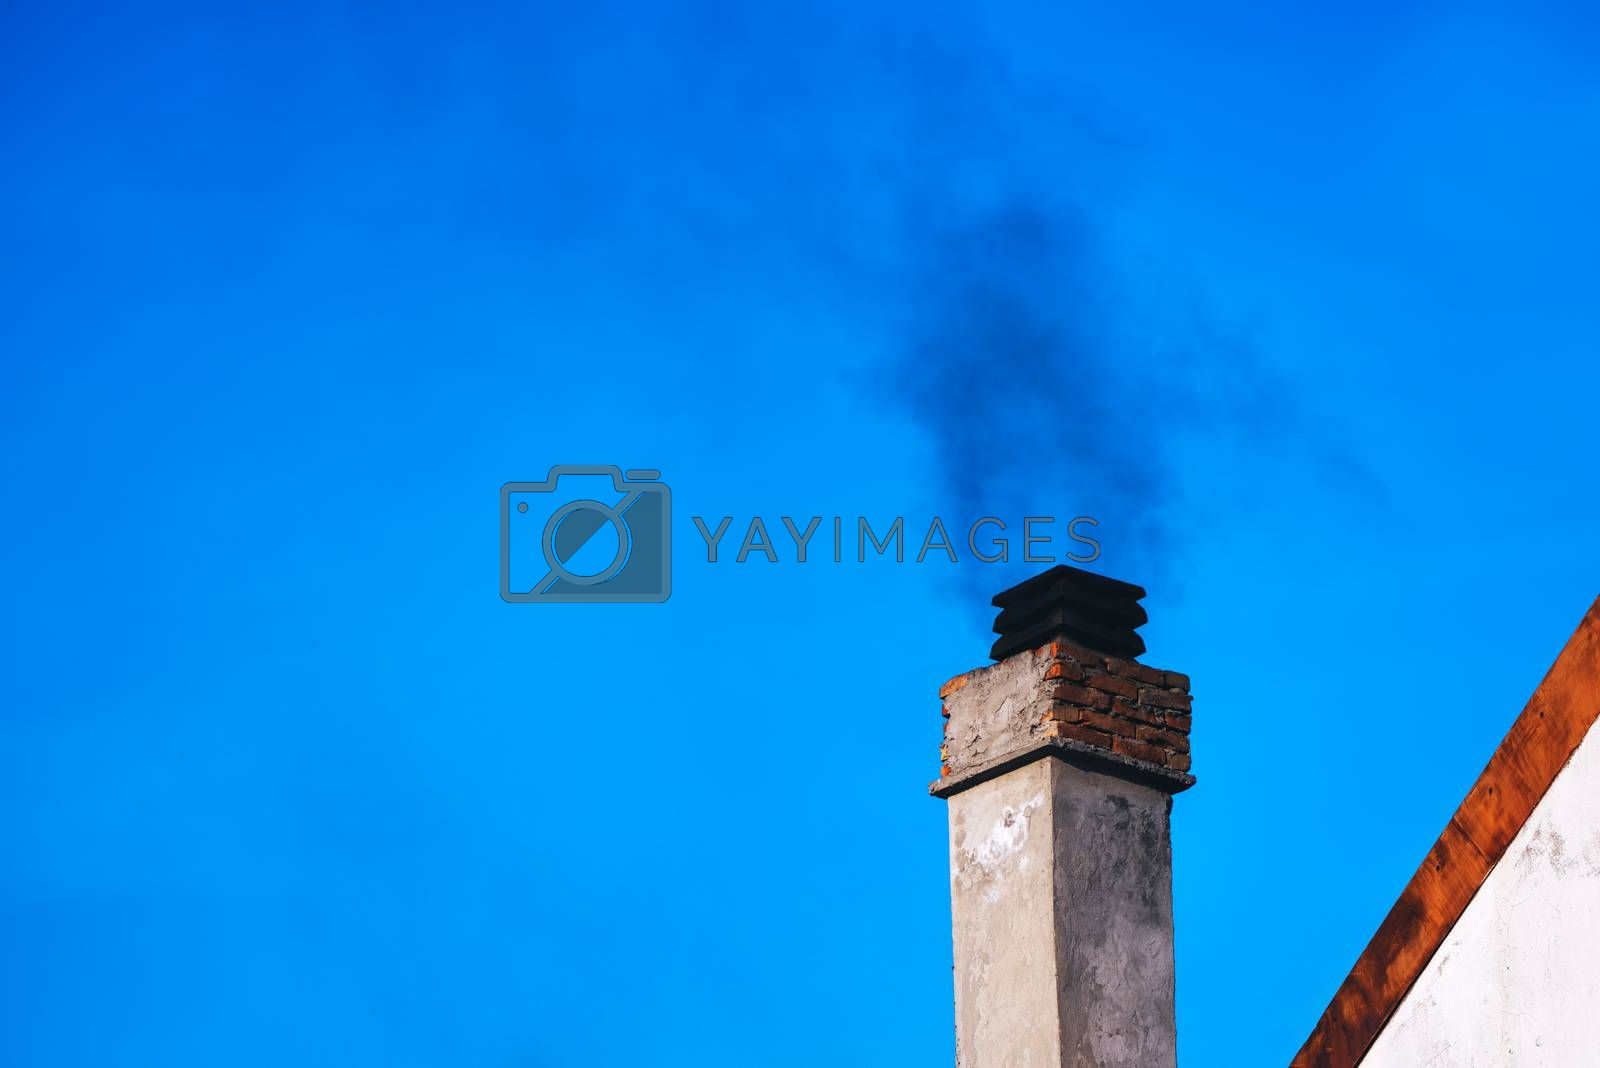 Smoke from house chimney on winter day